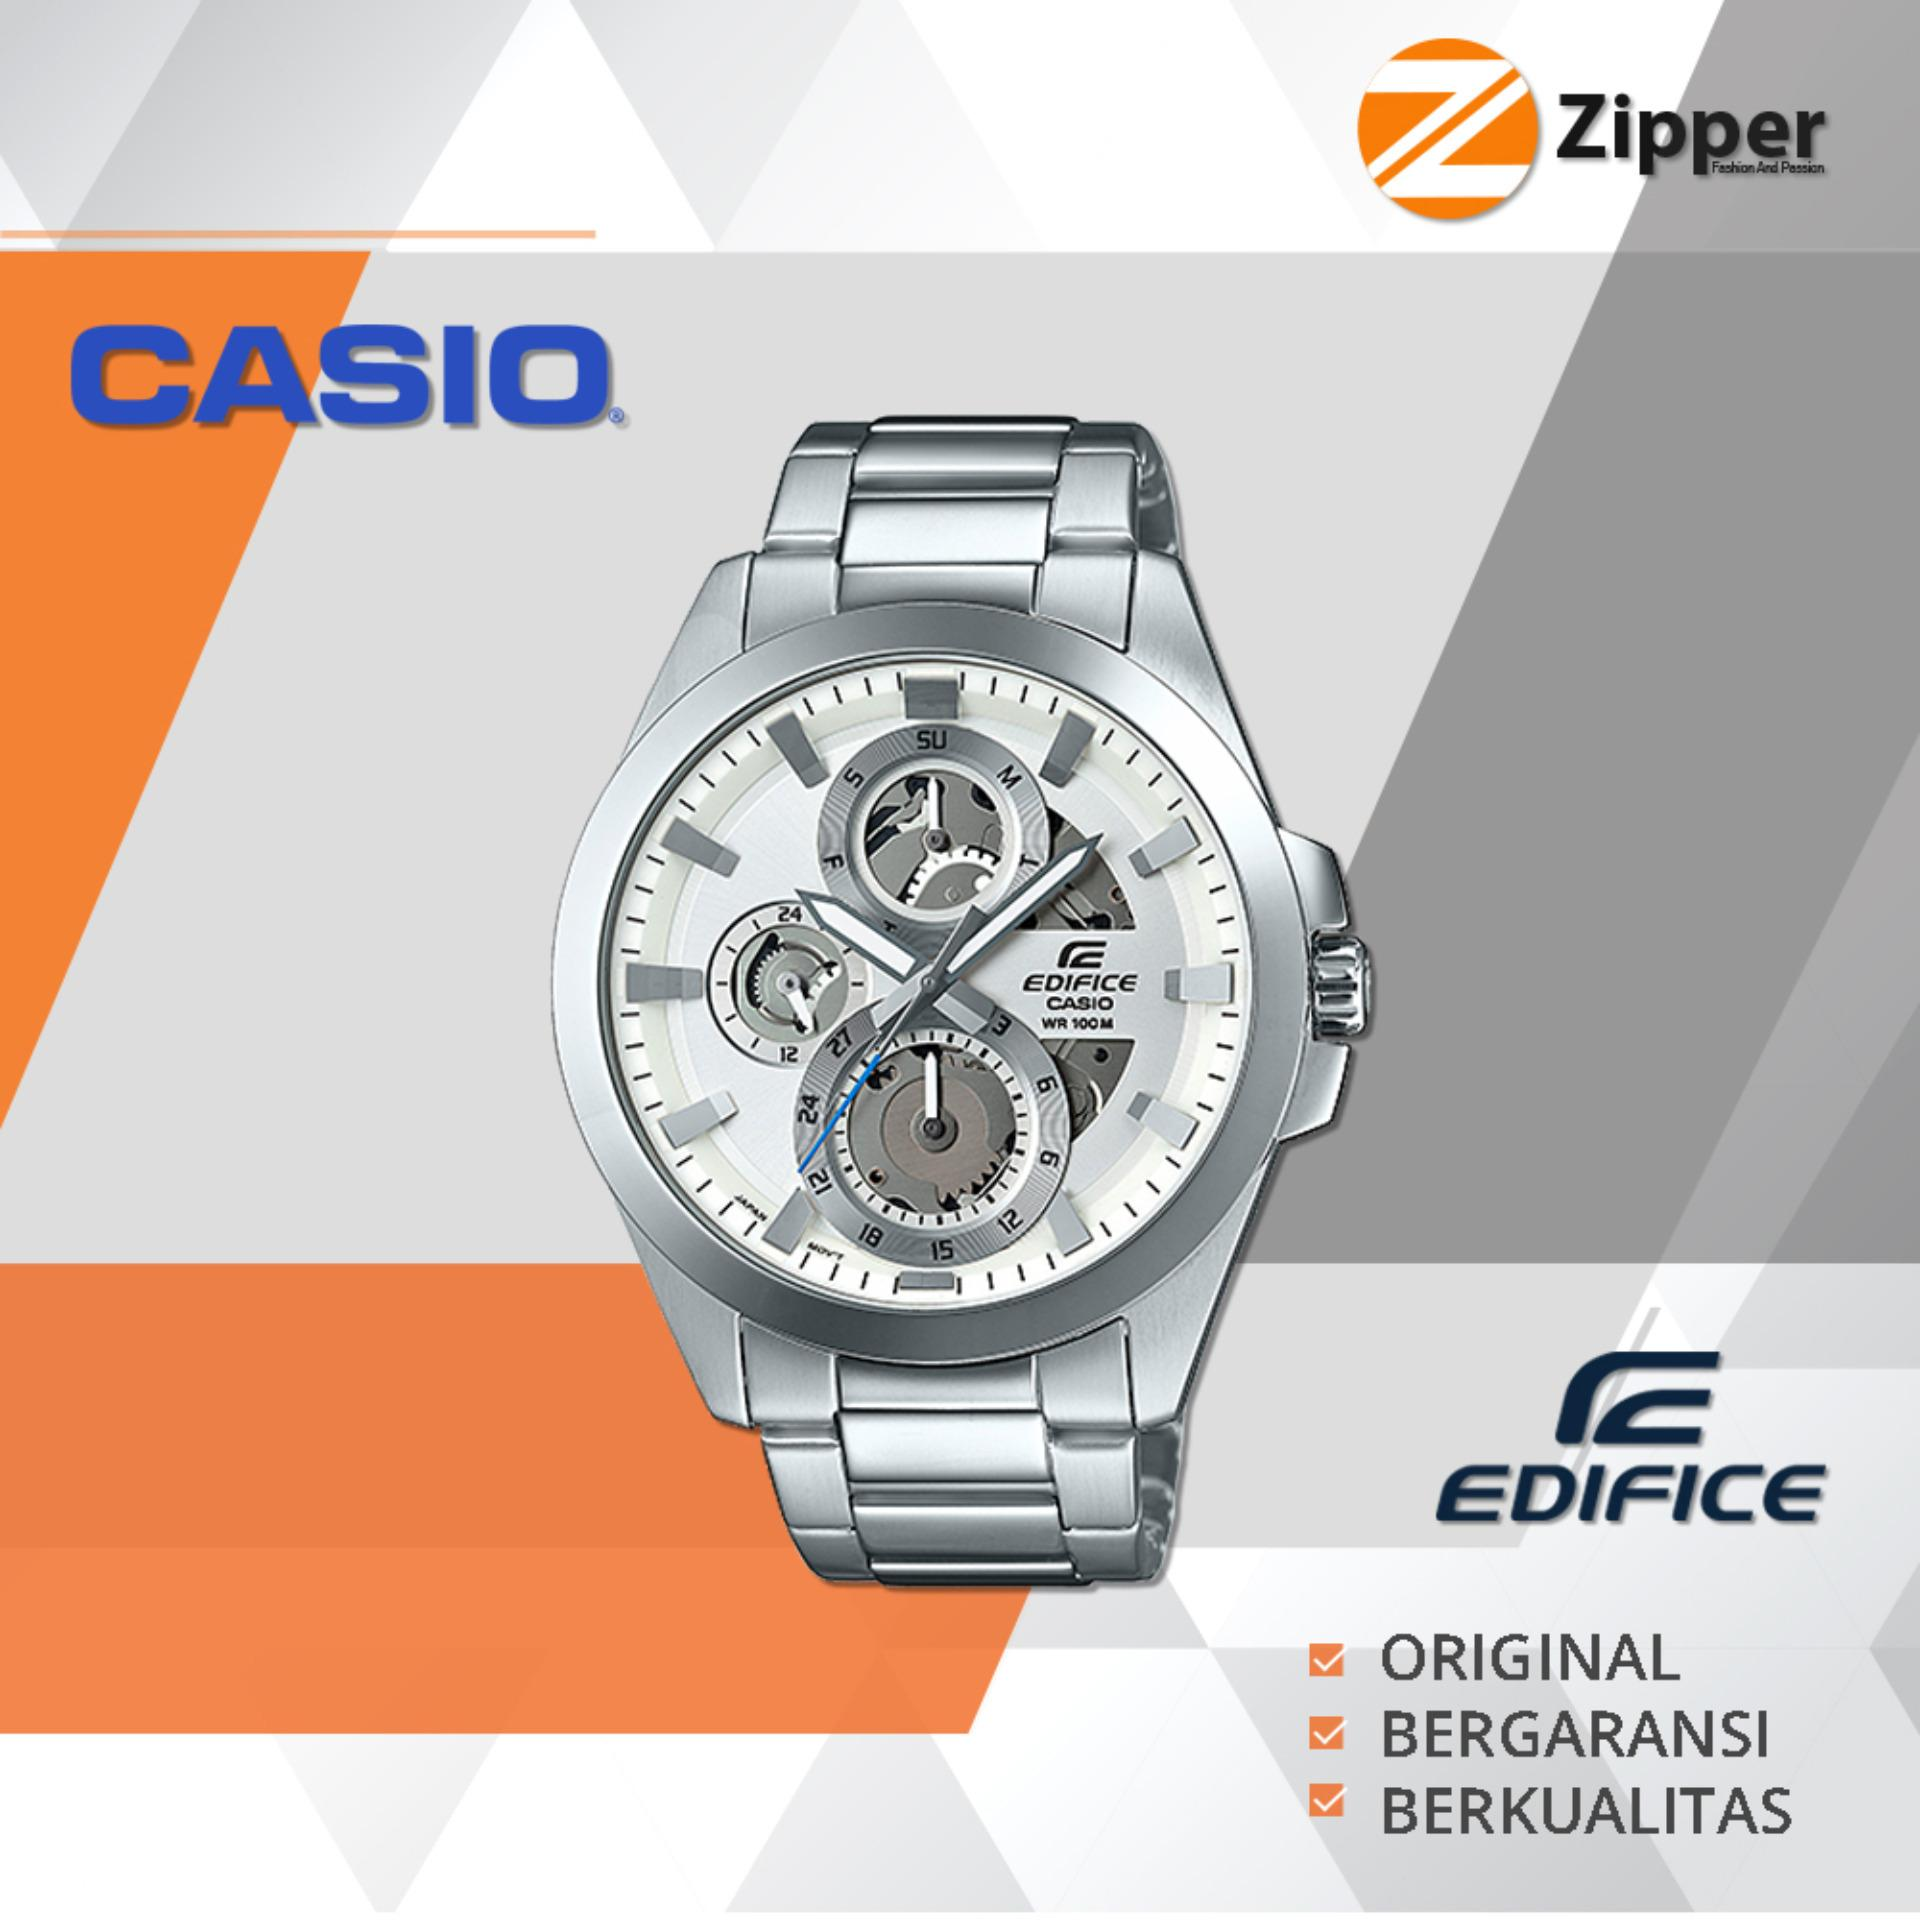 Casio Edifice Chronograph Jam Tangan Pria Analog Esk 300 Series Tali Stainless Steel Casio Edifice Diskon 40